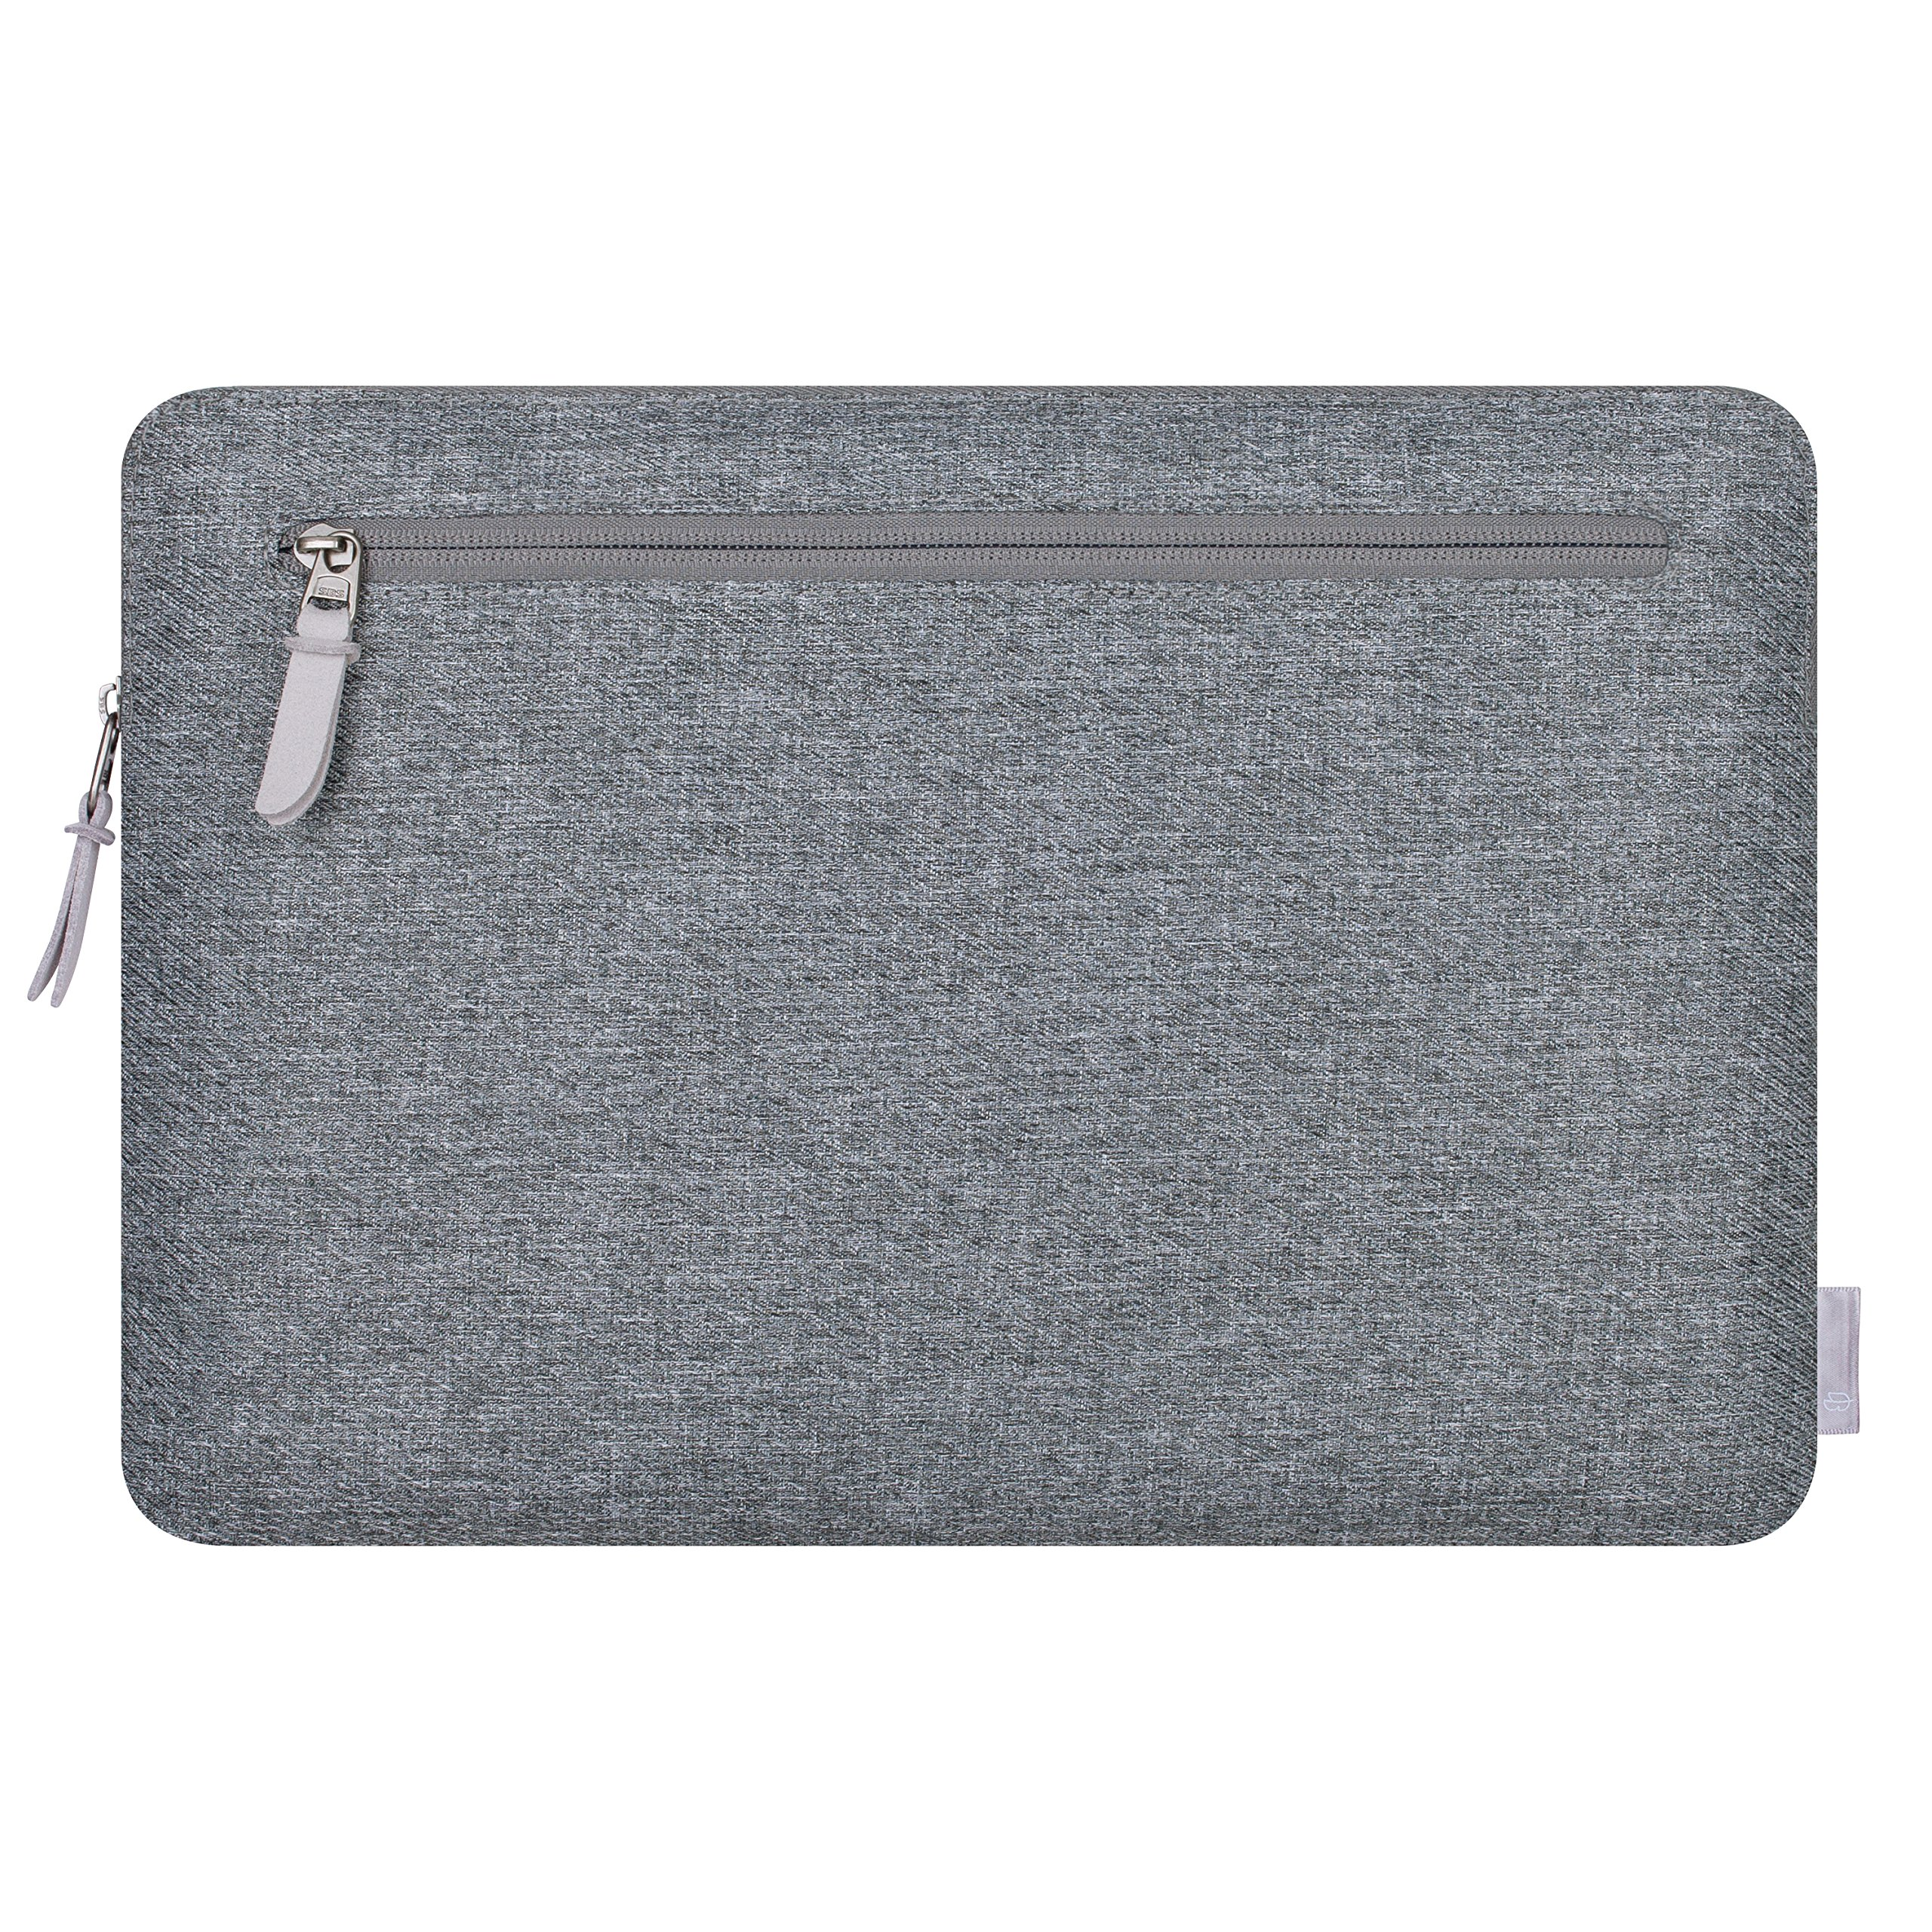 Comfyable Laptop Sleeve for 13-13.3 Inch New MacBook Pro 2016-2019, MacBook Air 2018 A1932 with Pocket- Waterproof Mac Cover Case - Dark Gray